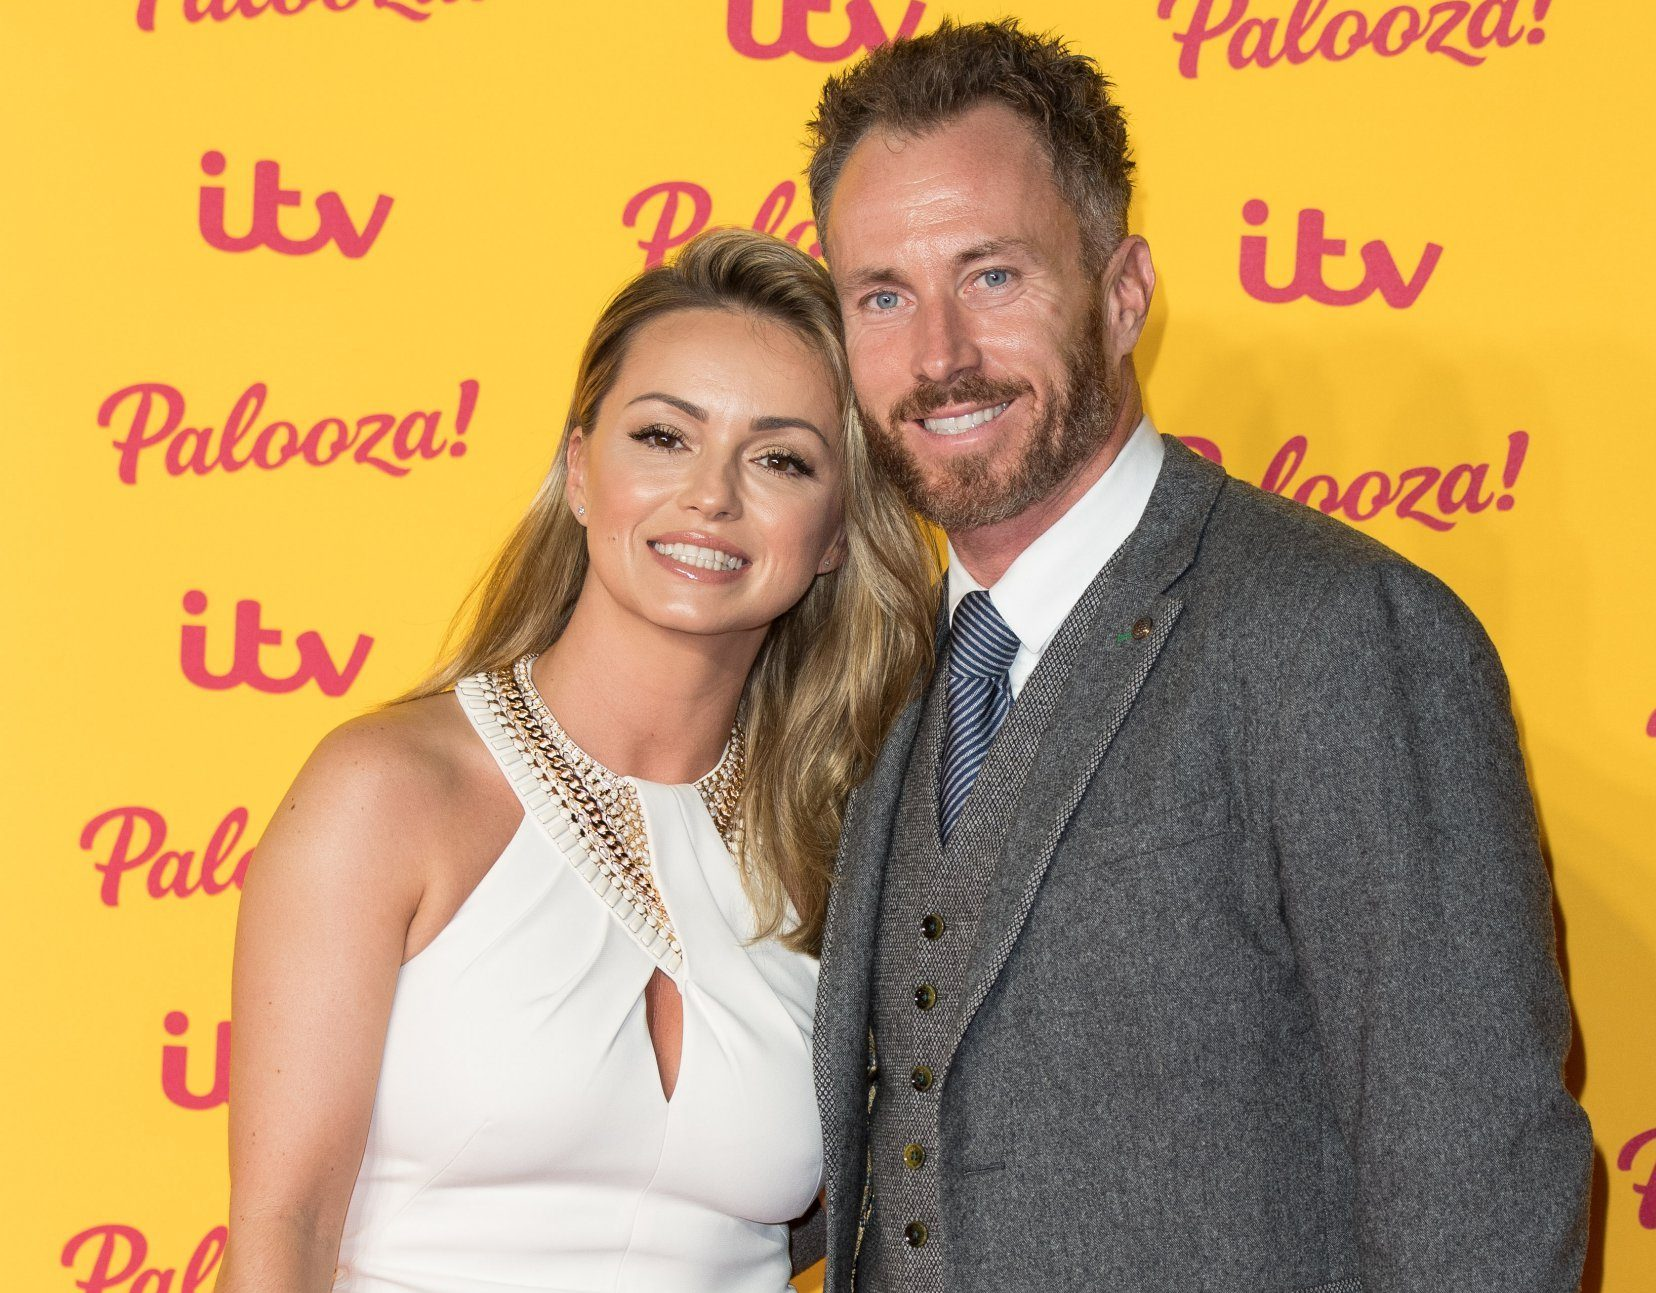 LONDON, ENGLAND - OCTOBER 16: (L-R) Ola Jordan and James Jordan attend the ITV Palooza! held at The Royal Festival Hall on October 16, 2018 in London, England. (Photo by Jeff Spicer/WireImage)